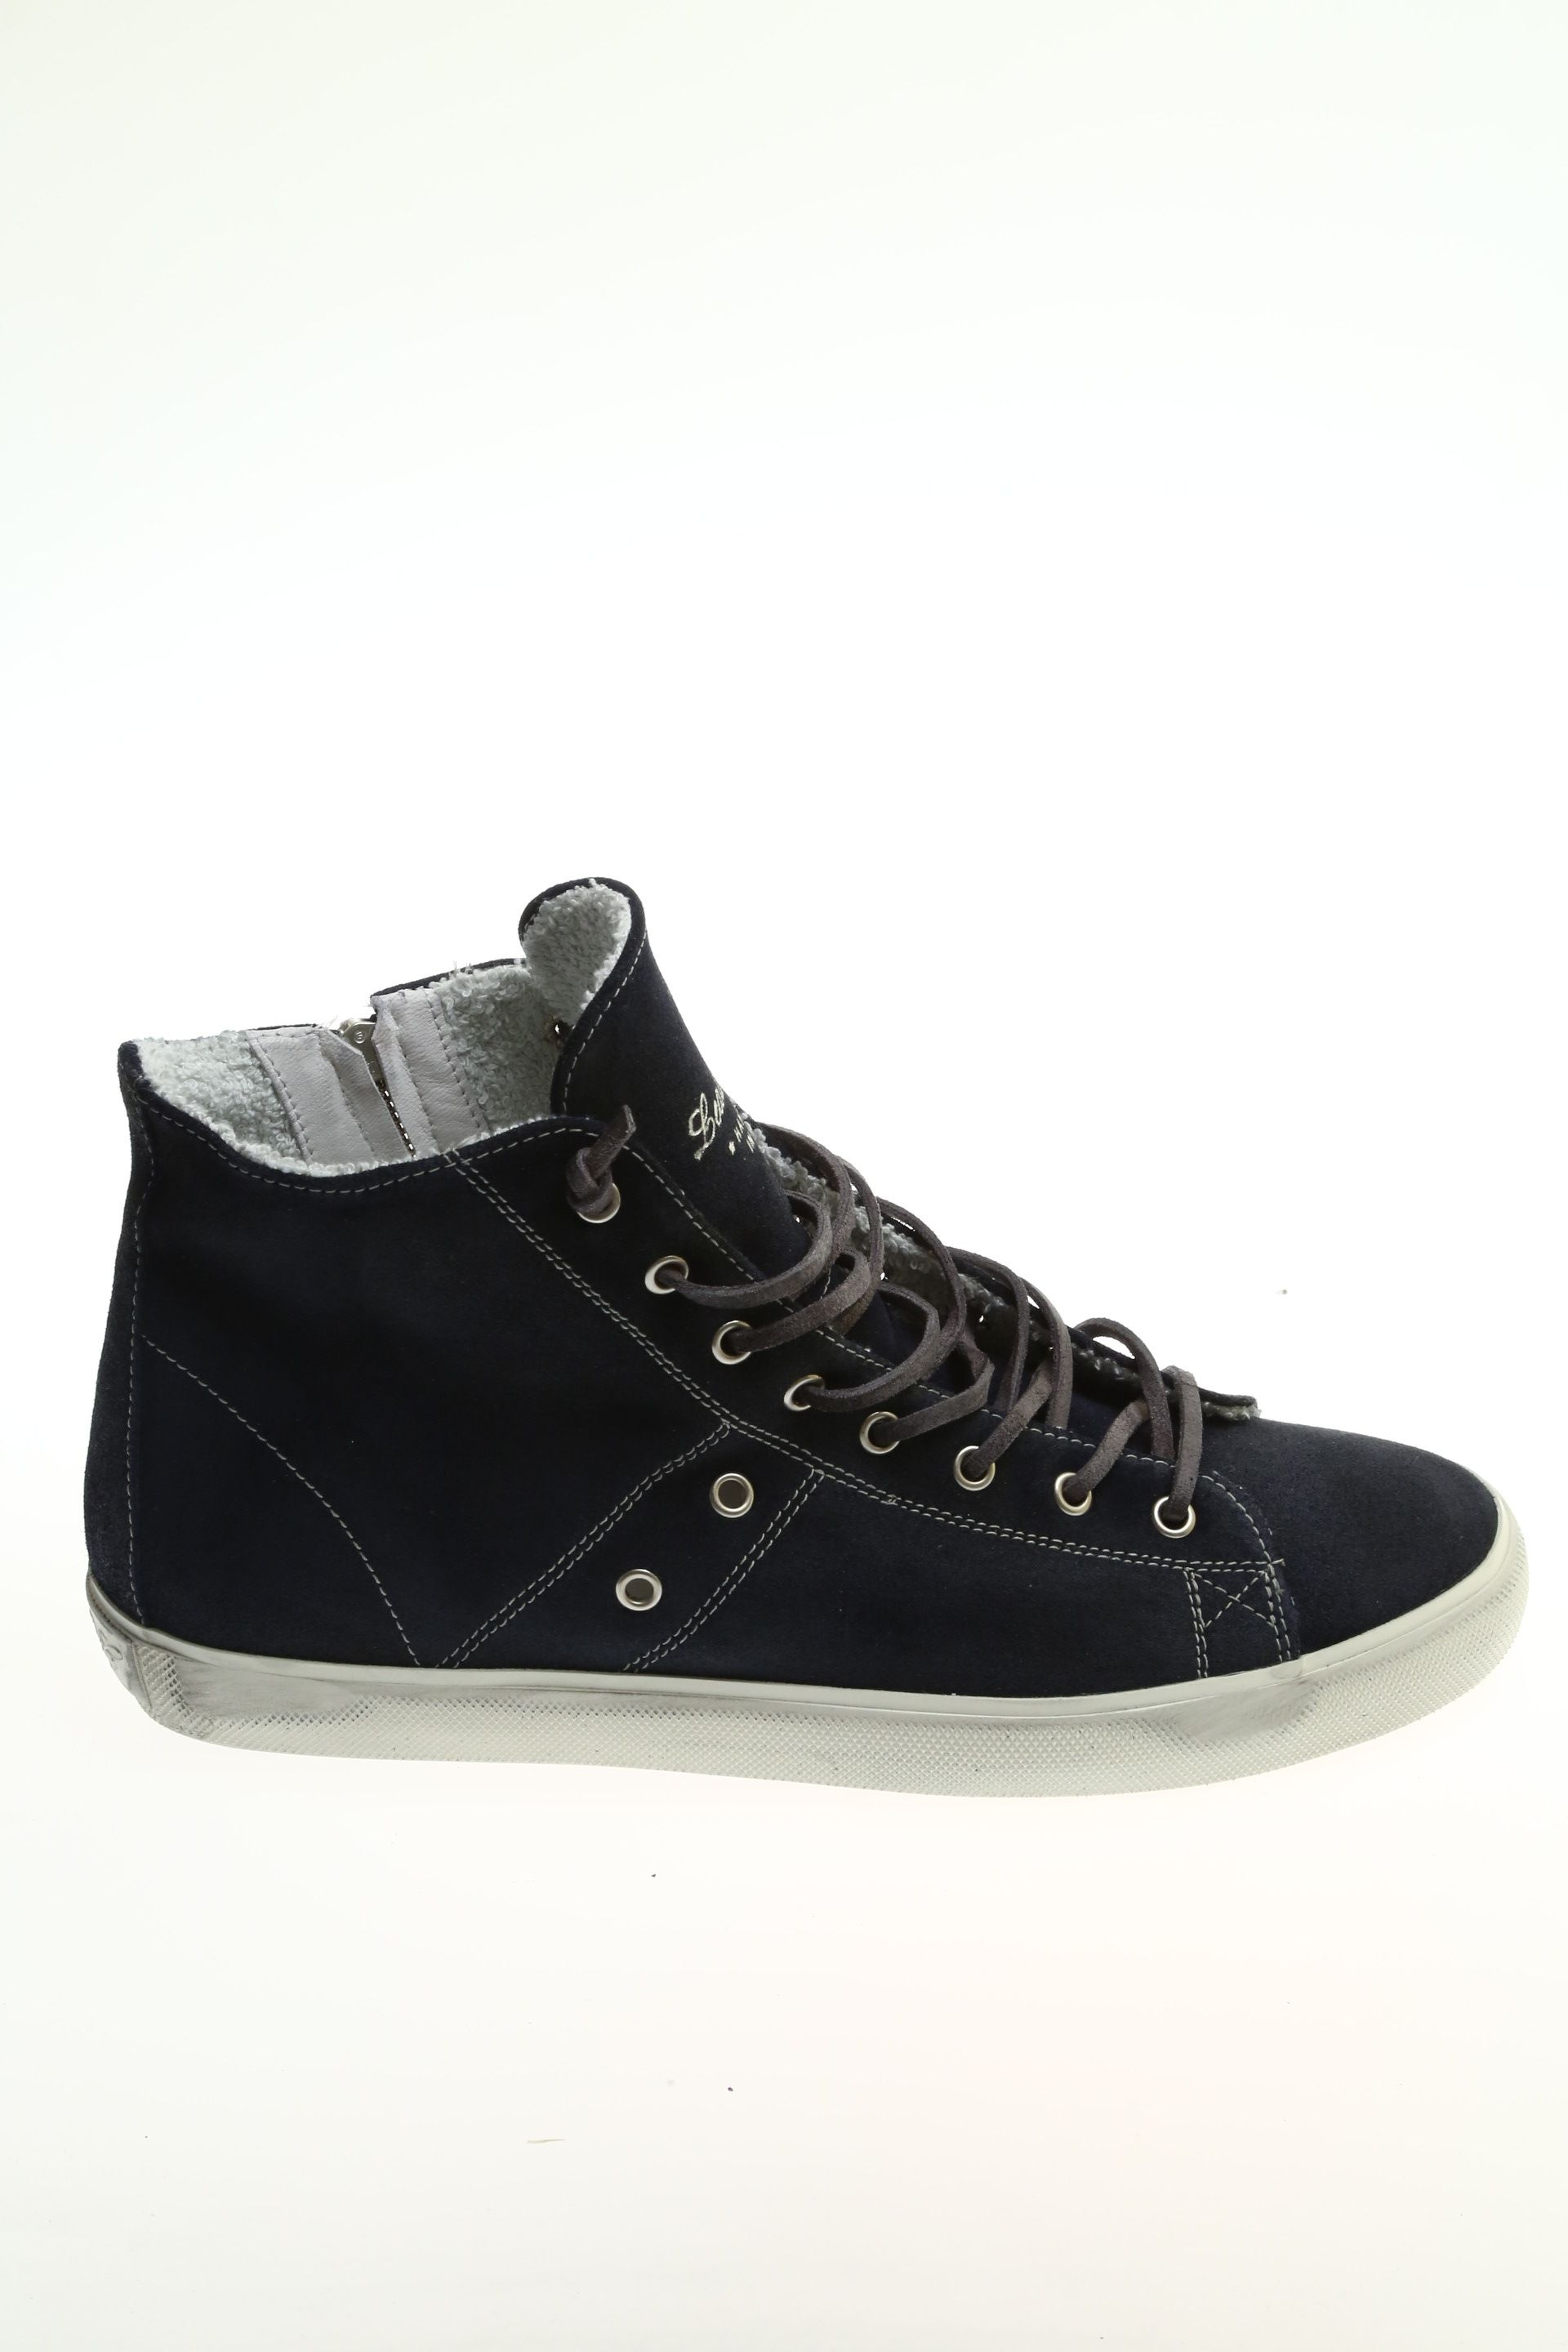 Sneaker Navy Camoscio LEATHER CROWN - Sneakers cc36b941d0b